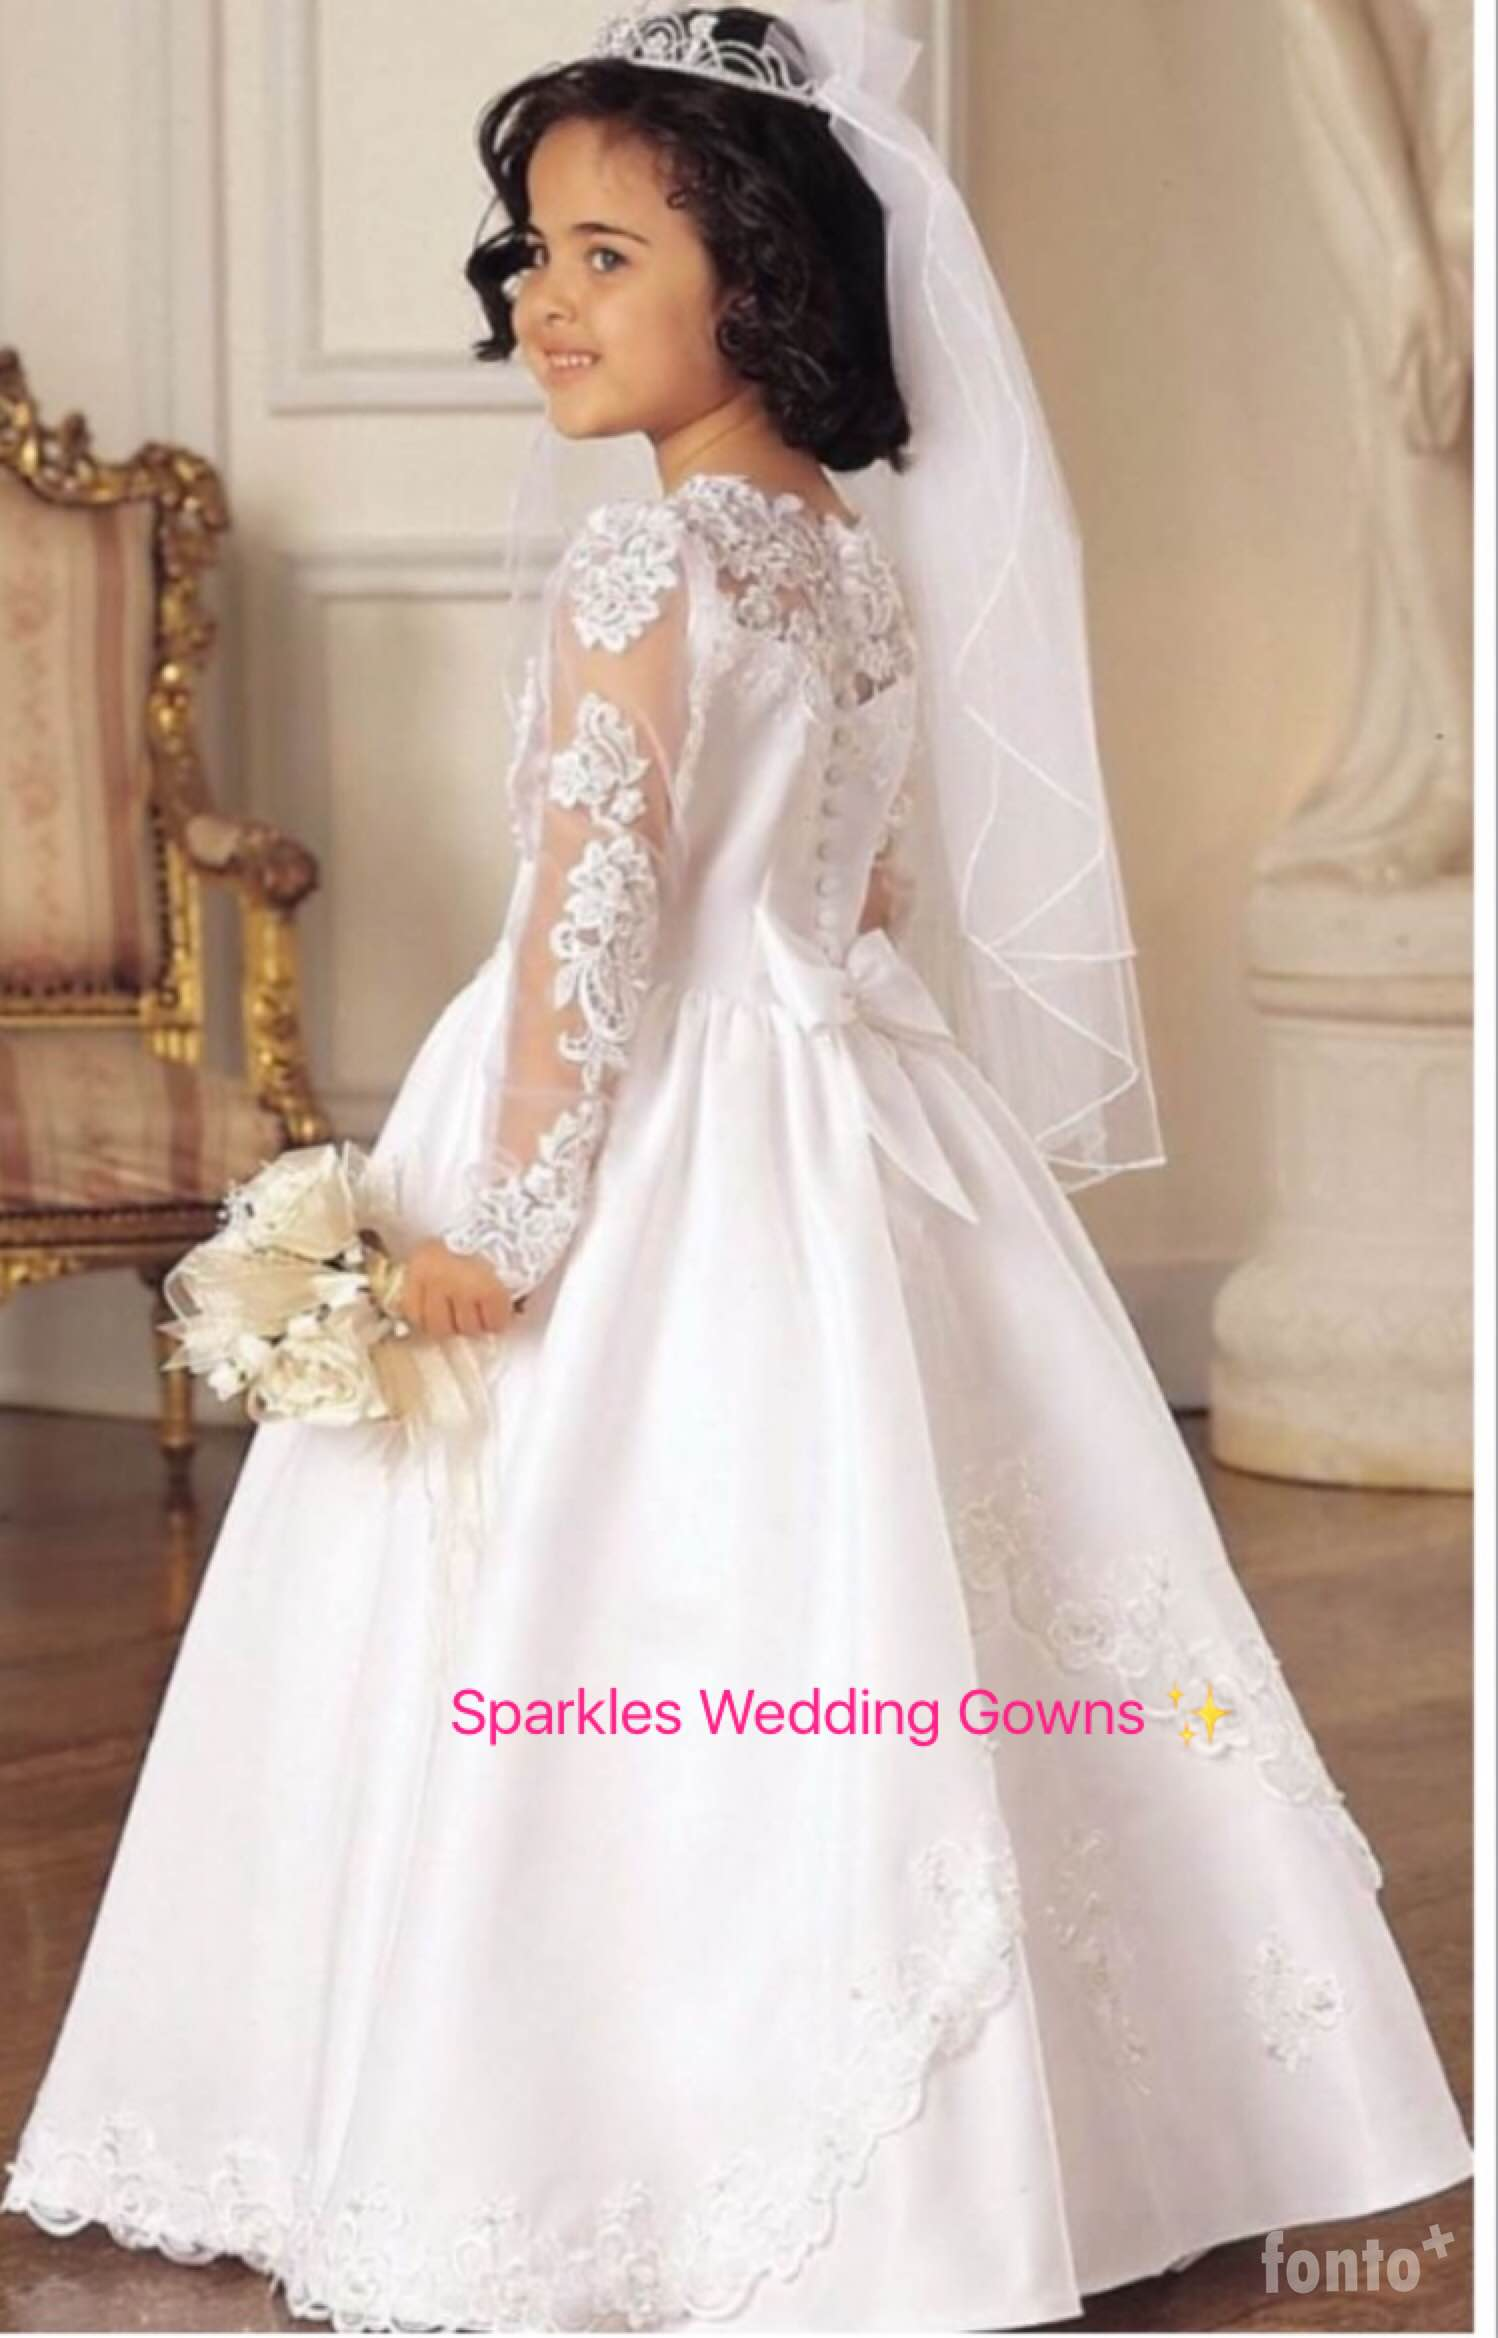 Sparkles Wedding Gowns in Bangalore, Specialized in Gowns & Wedding ...